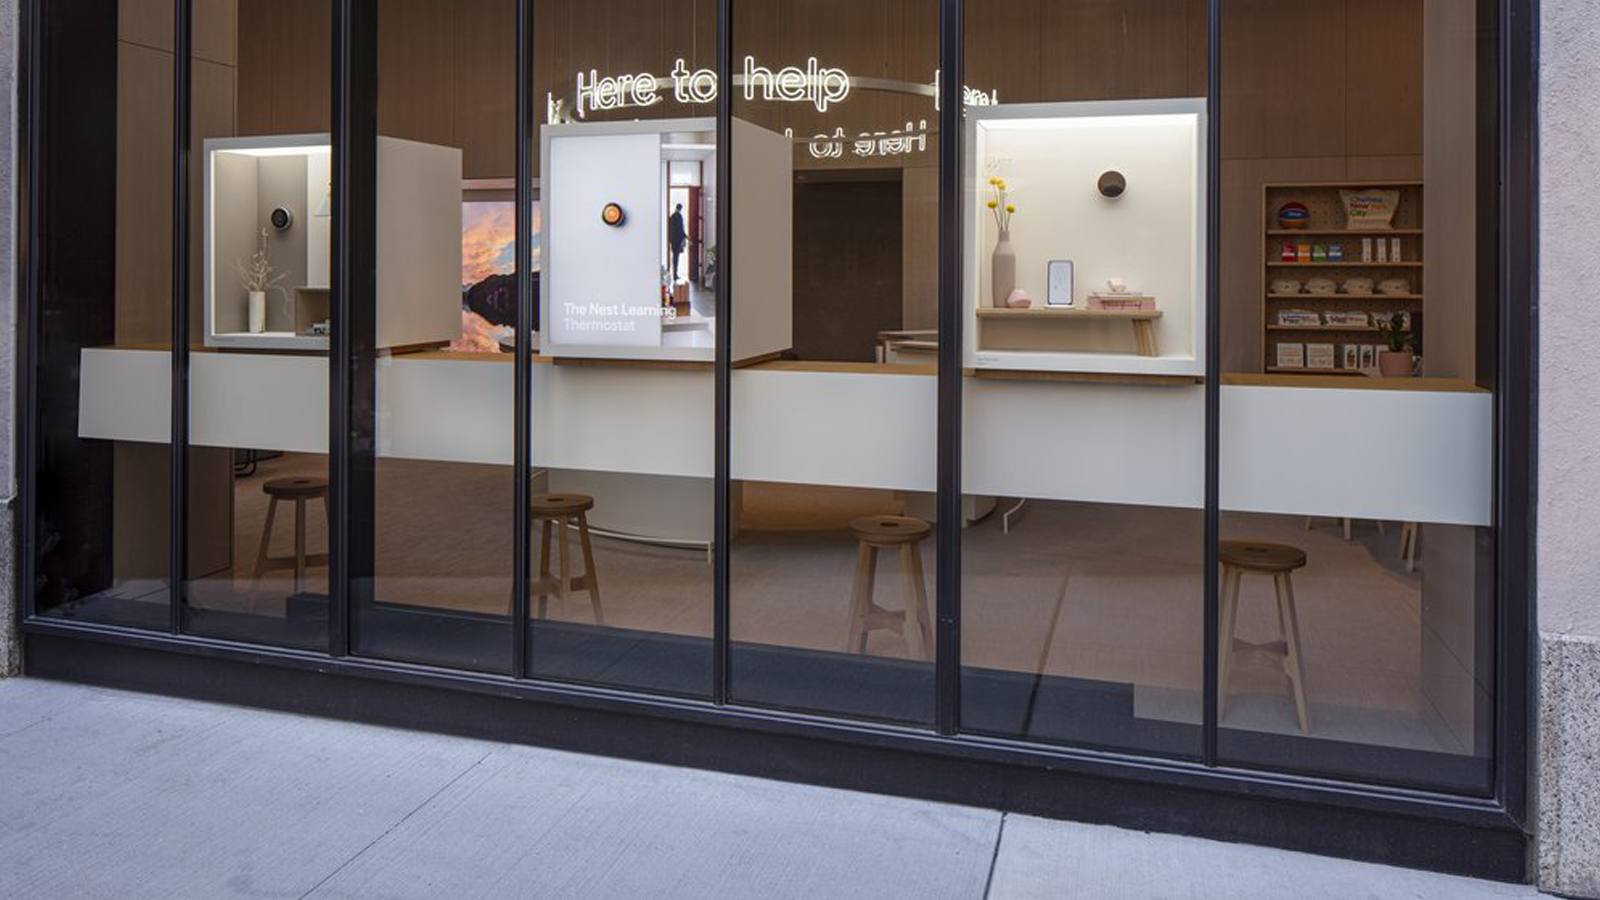 View of the store's exterior, with product display boxes in the window